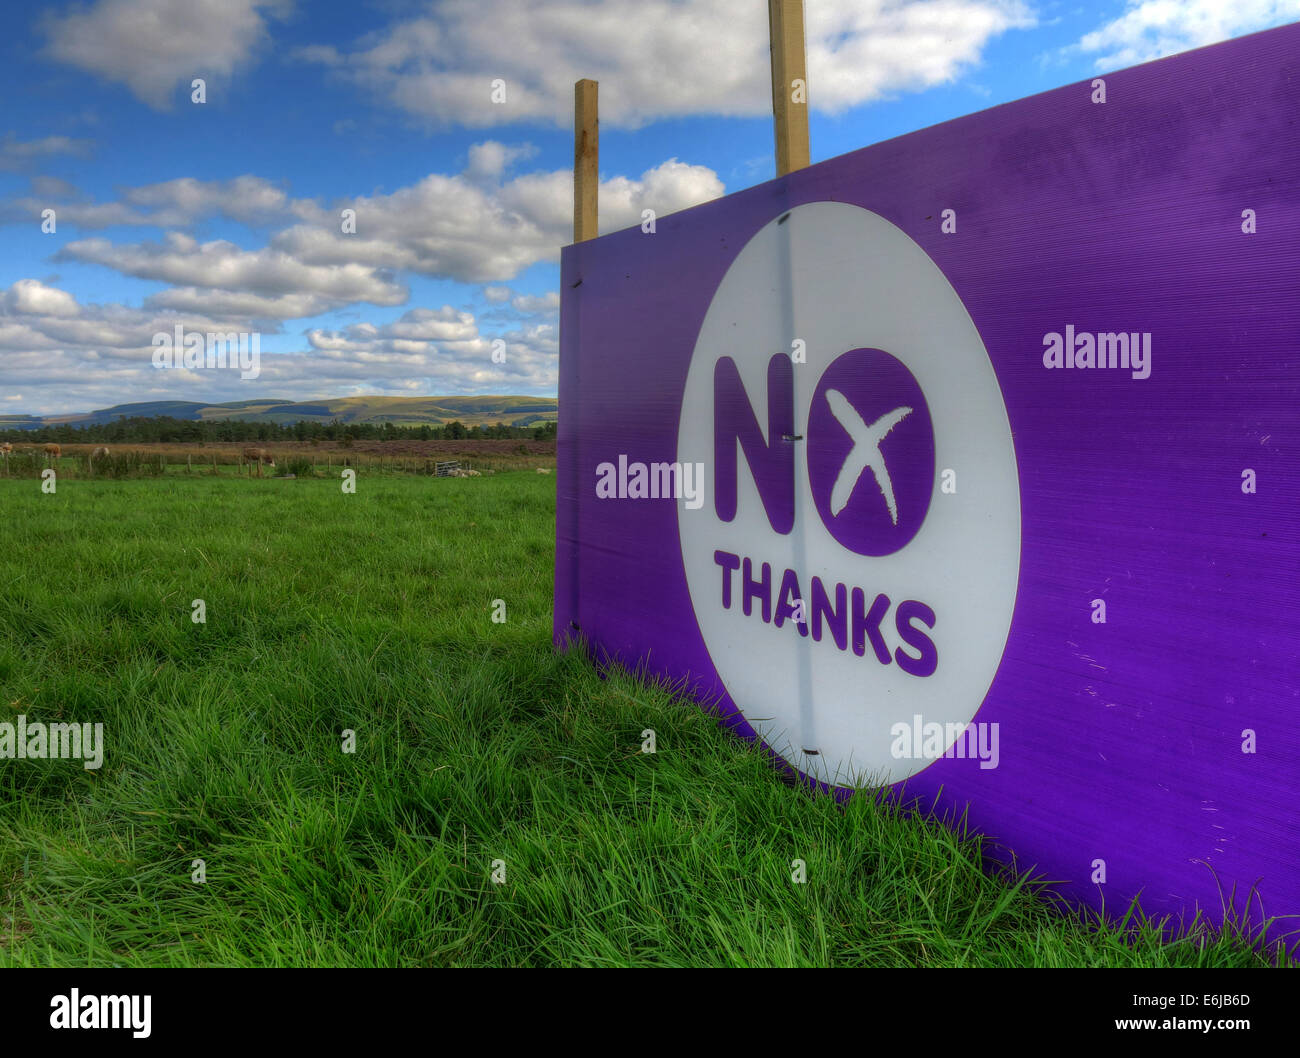 Sep,field,fields,rural,borders,decides,votes,ballot,vote,Scottish,Field,September,2014,Scotland,UK,debate,result,Scots,opinion,bettertogether,bright,sunshine,passion,Nothanks,publicity,Scottish,SNP,independance party,independence,indyref,referendum,2nd,second,Brexit,#Brexit,hotpixuk,@hotpixuk,indyref,indyref,Alastair,Darling,Alex,Salmon,Salmond,powers,power,for,holyrood,Edinburgh,City,of,Glasgow City,of,Edinburgh Fife North,Lanarkshire South,Lanarkshire Aberdeenshire Highland City,of,Aberdeen West,Lothian Renfrewshire Falkirk Dumfries,and,Galloway Perth,and,Kinross City,of,Dundee North,Ayrshire East,Ayrshire Scottish,Borders South,Ayrshire Angus East,Dunbartonshire East,Lothian West,Dunbartonshire Stirling East,Renfrewshire Argyll,and,Bute Moray Midlothian Inverclyde Clackmannanshire Na,h-Eileanan,Siar,(Western,Isles) Shetland,Islands Orkney,Islands,CNES